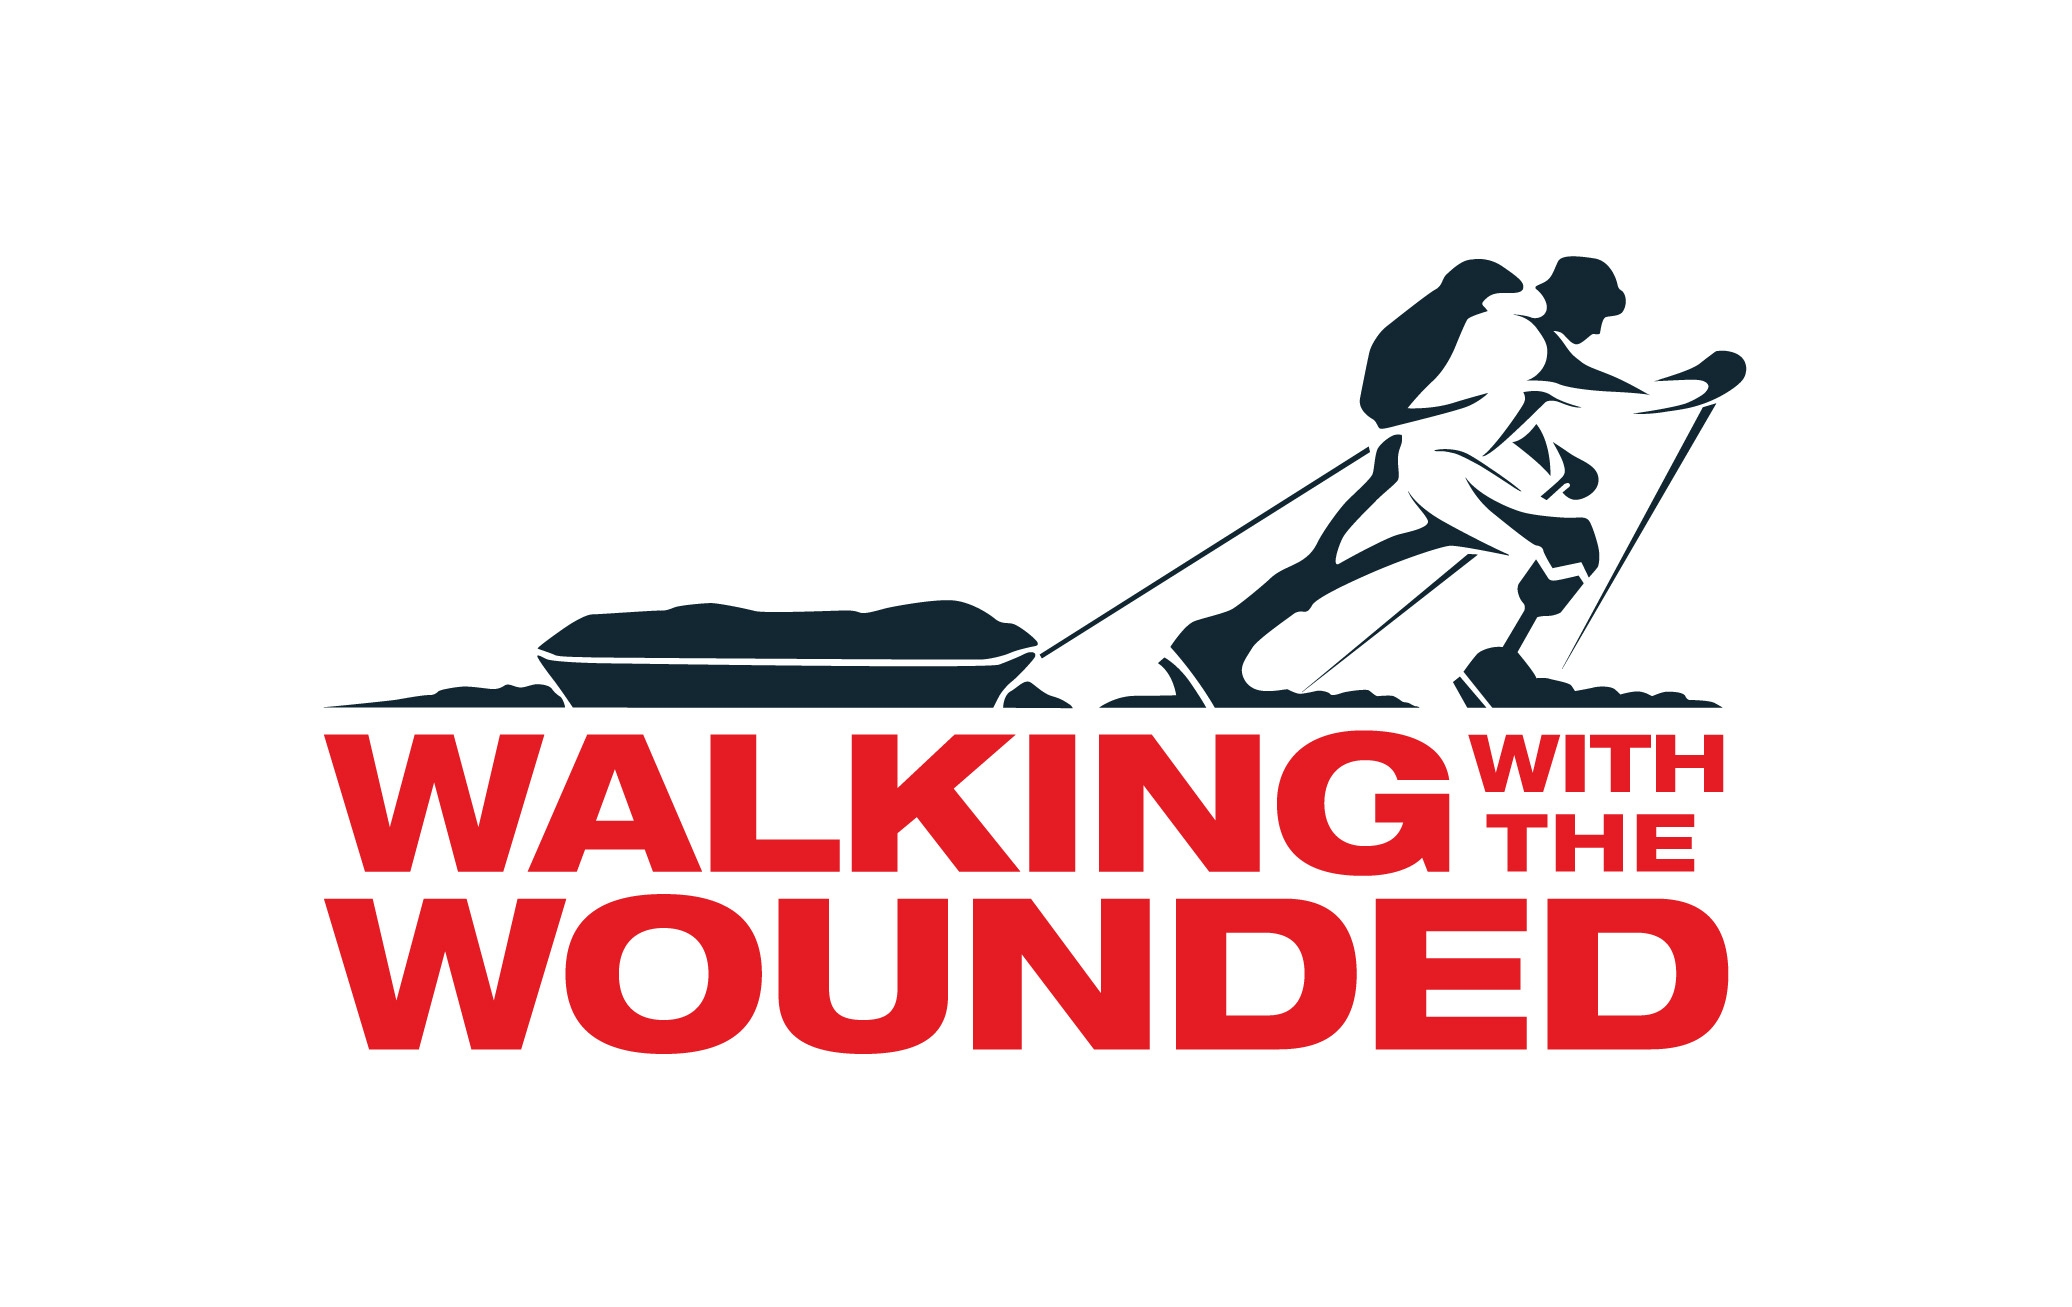 http://walkingwiththewounded.org.uk/